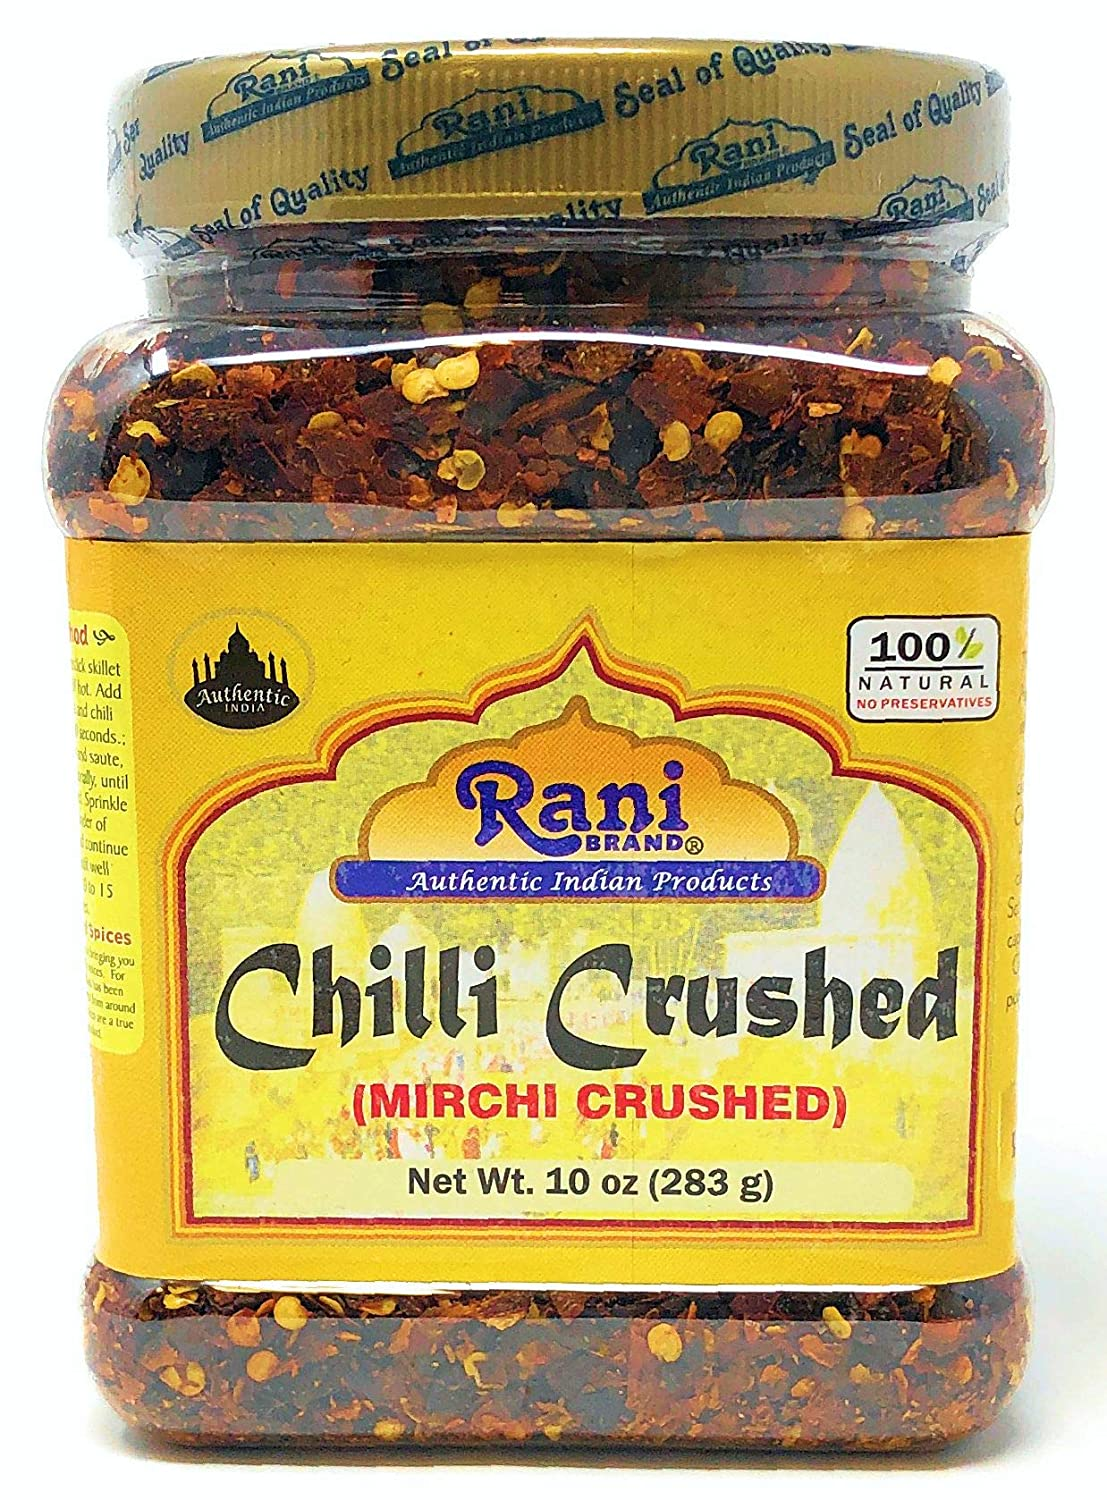 Rani Crushed Chilli (Pizza Type Cut) Indian Spice 10oz (283g) ~ All Natural, No Color added, Gluten Free Ingredients | Vegan | NON-GMO | No Salt or fillers